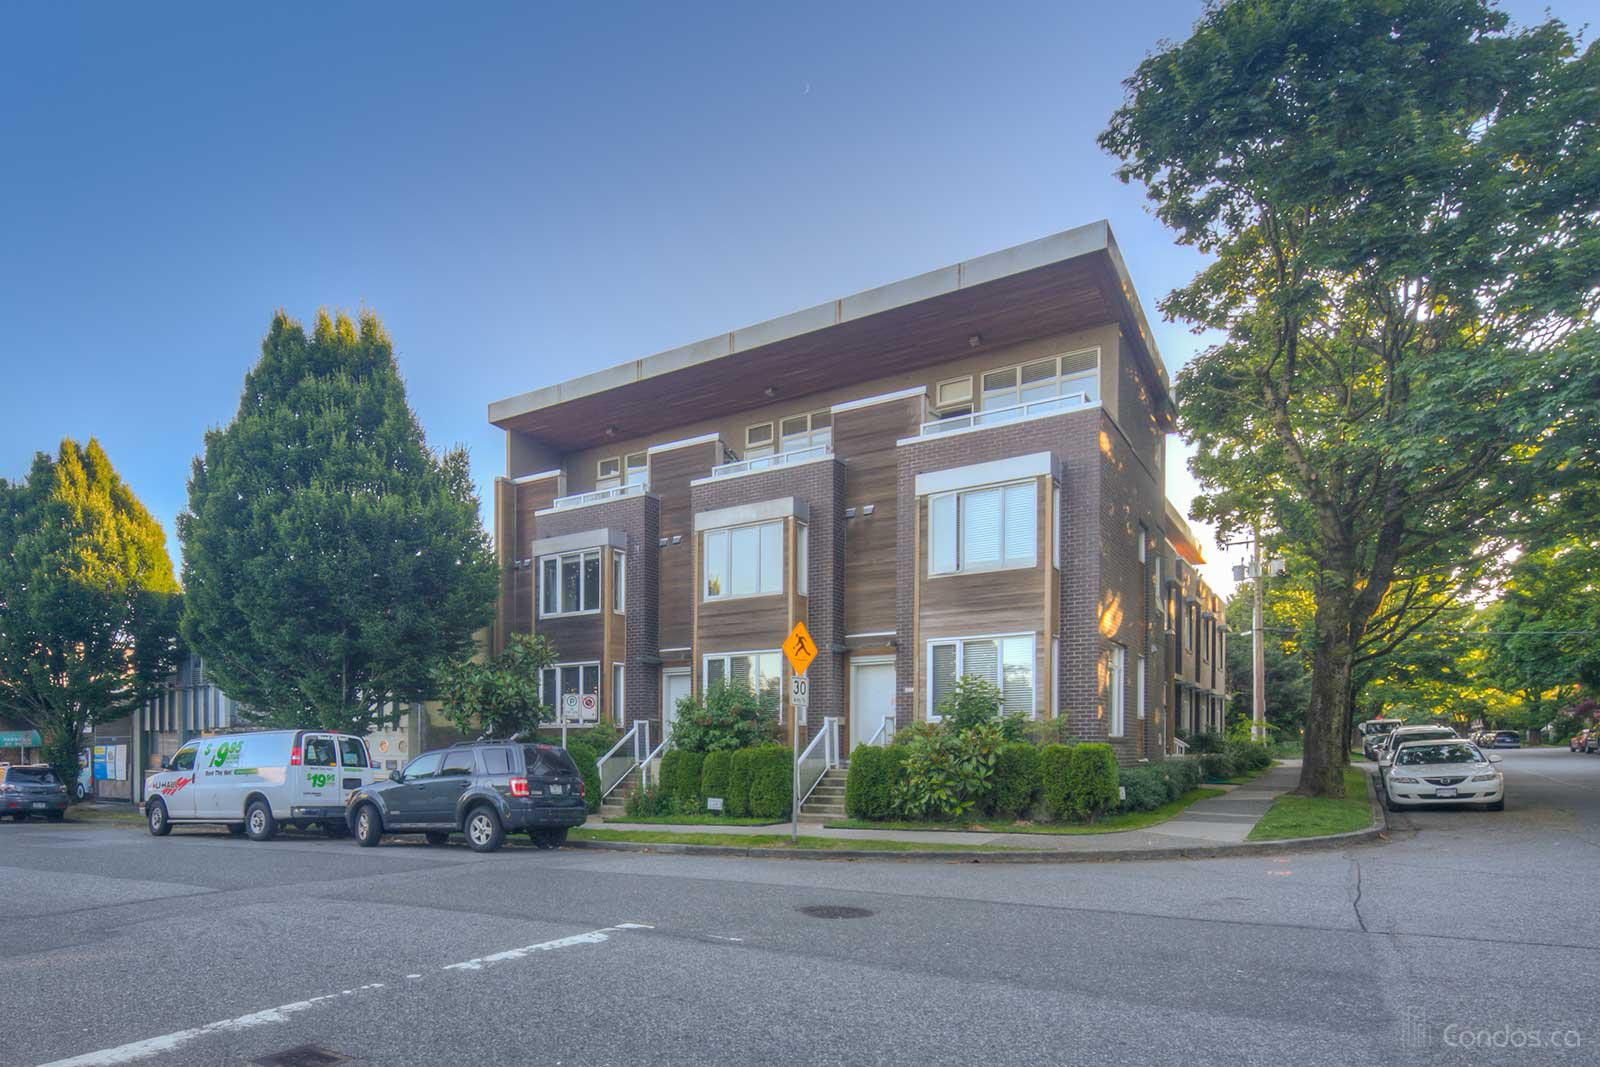 Villagio at 8809 Selkirk St, Vancouver 0